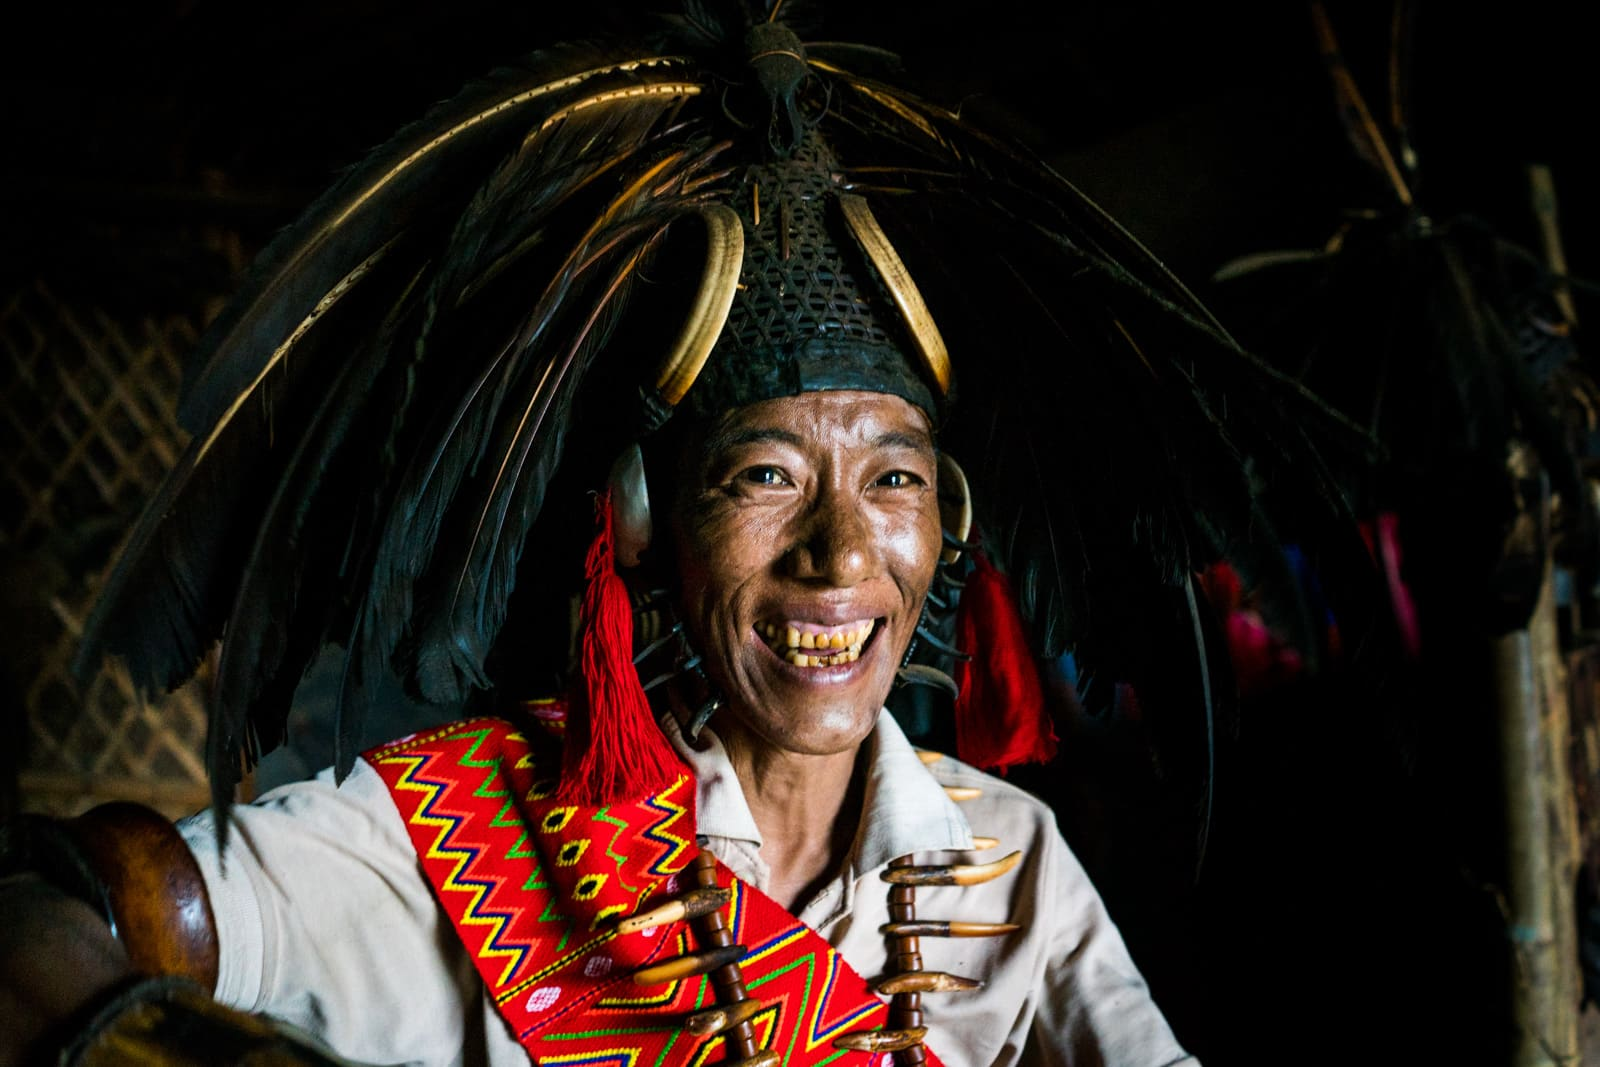 Opium and Jesus and headhunting in Longwa Village, Nagaland, India - Nyakto in headhunter warrior dress and headdress - Lost With Purpose